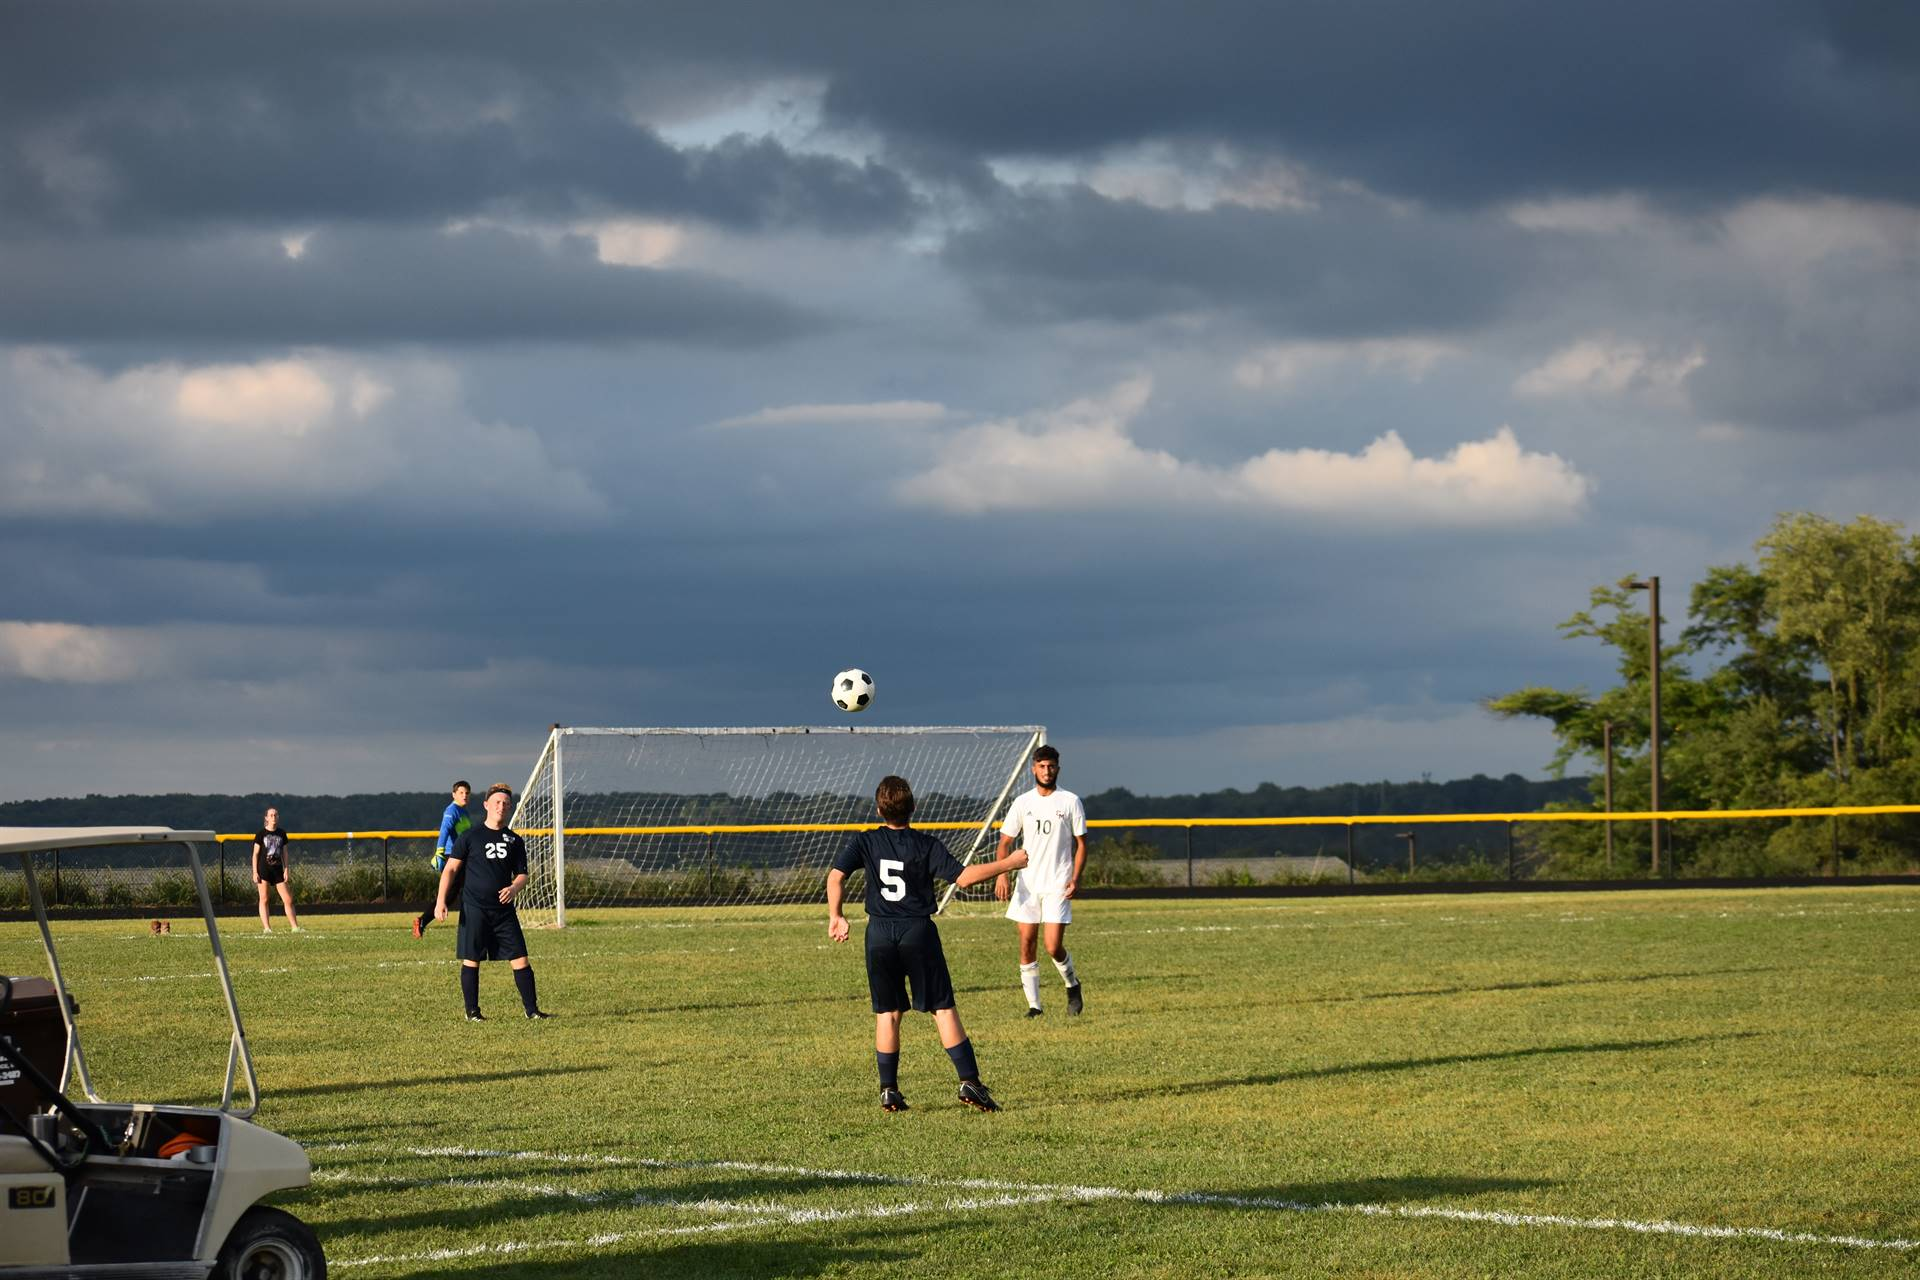 The varsity boys soccer team in action